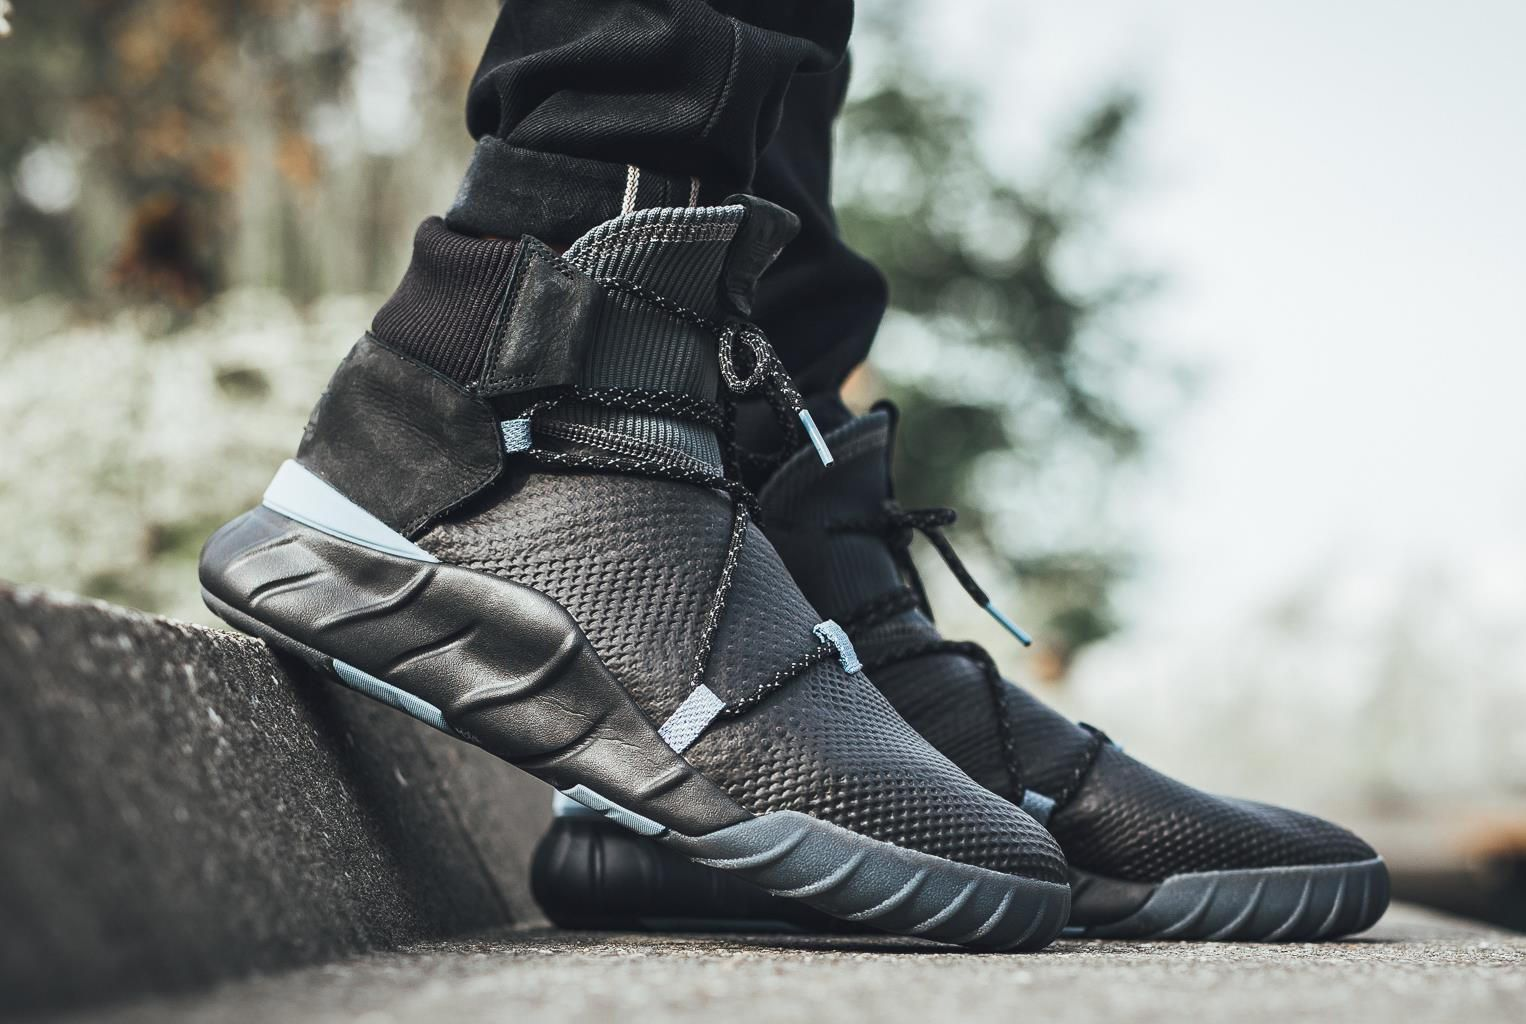 best sneakers 6f7f4 1164f Core Black Coats The adidas Tubular X 2.0 Primeknit • KicksOnFire.com